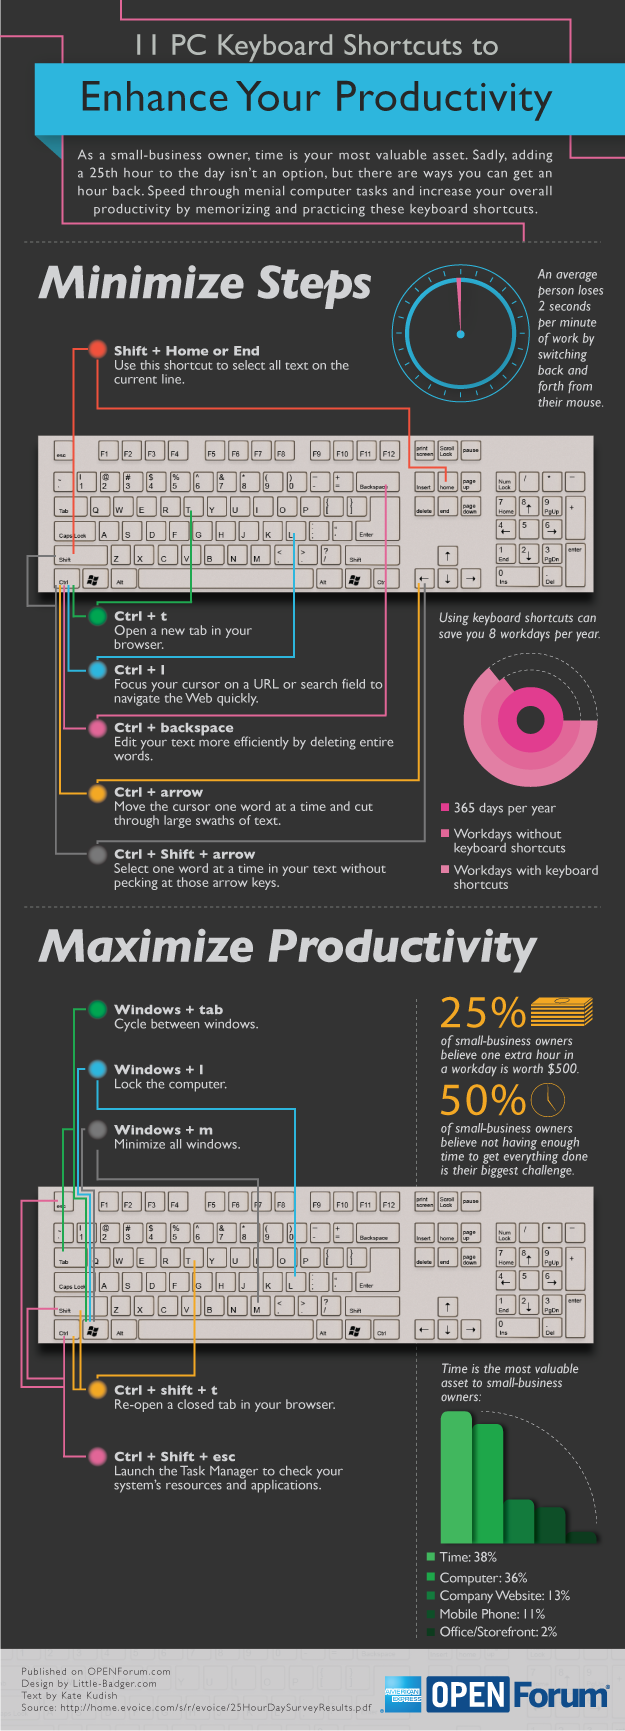 11-PC-Keyboard-Shortcuts-To-Enhance-Your-Productivity #Infographic